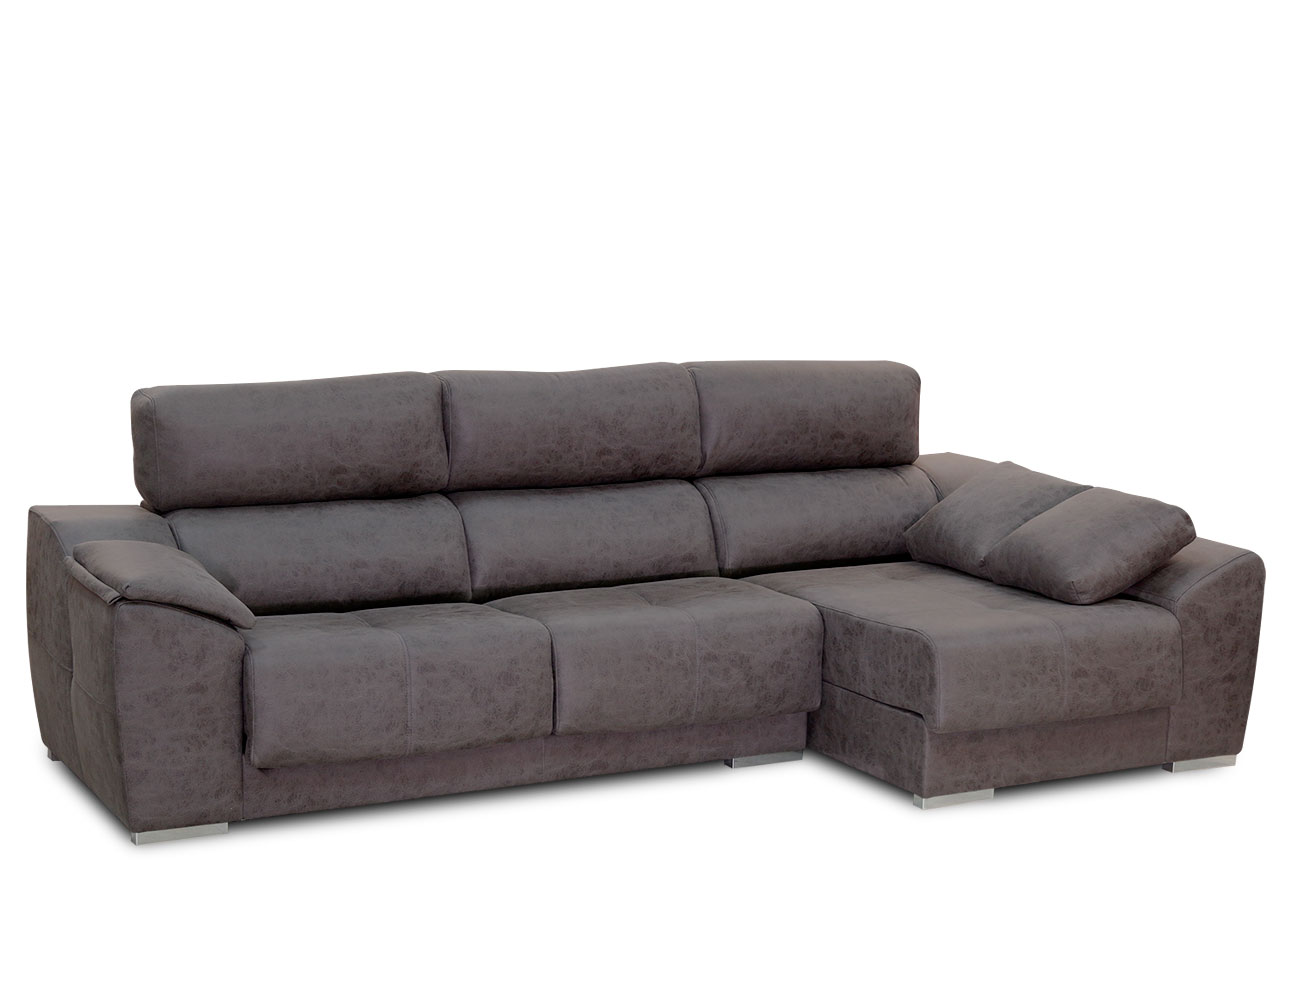 Sofa chaiselongue pared 0 magnolia plomo 1